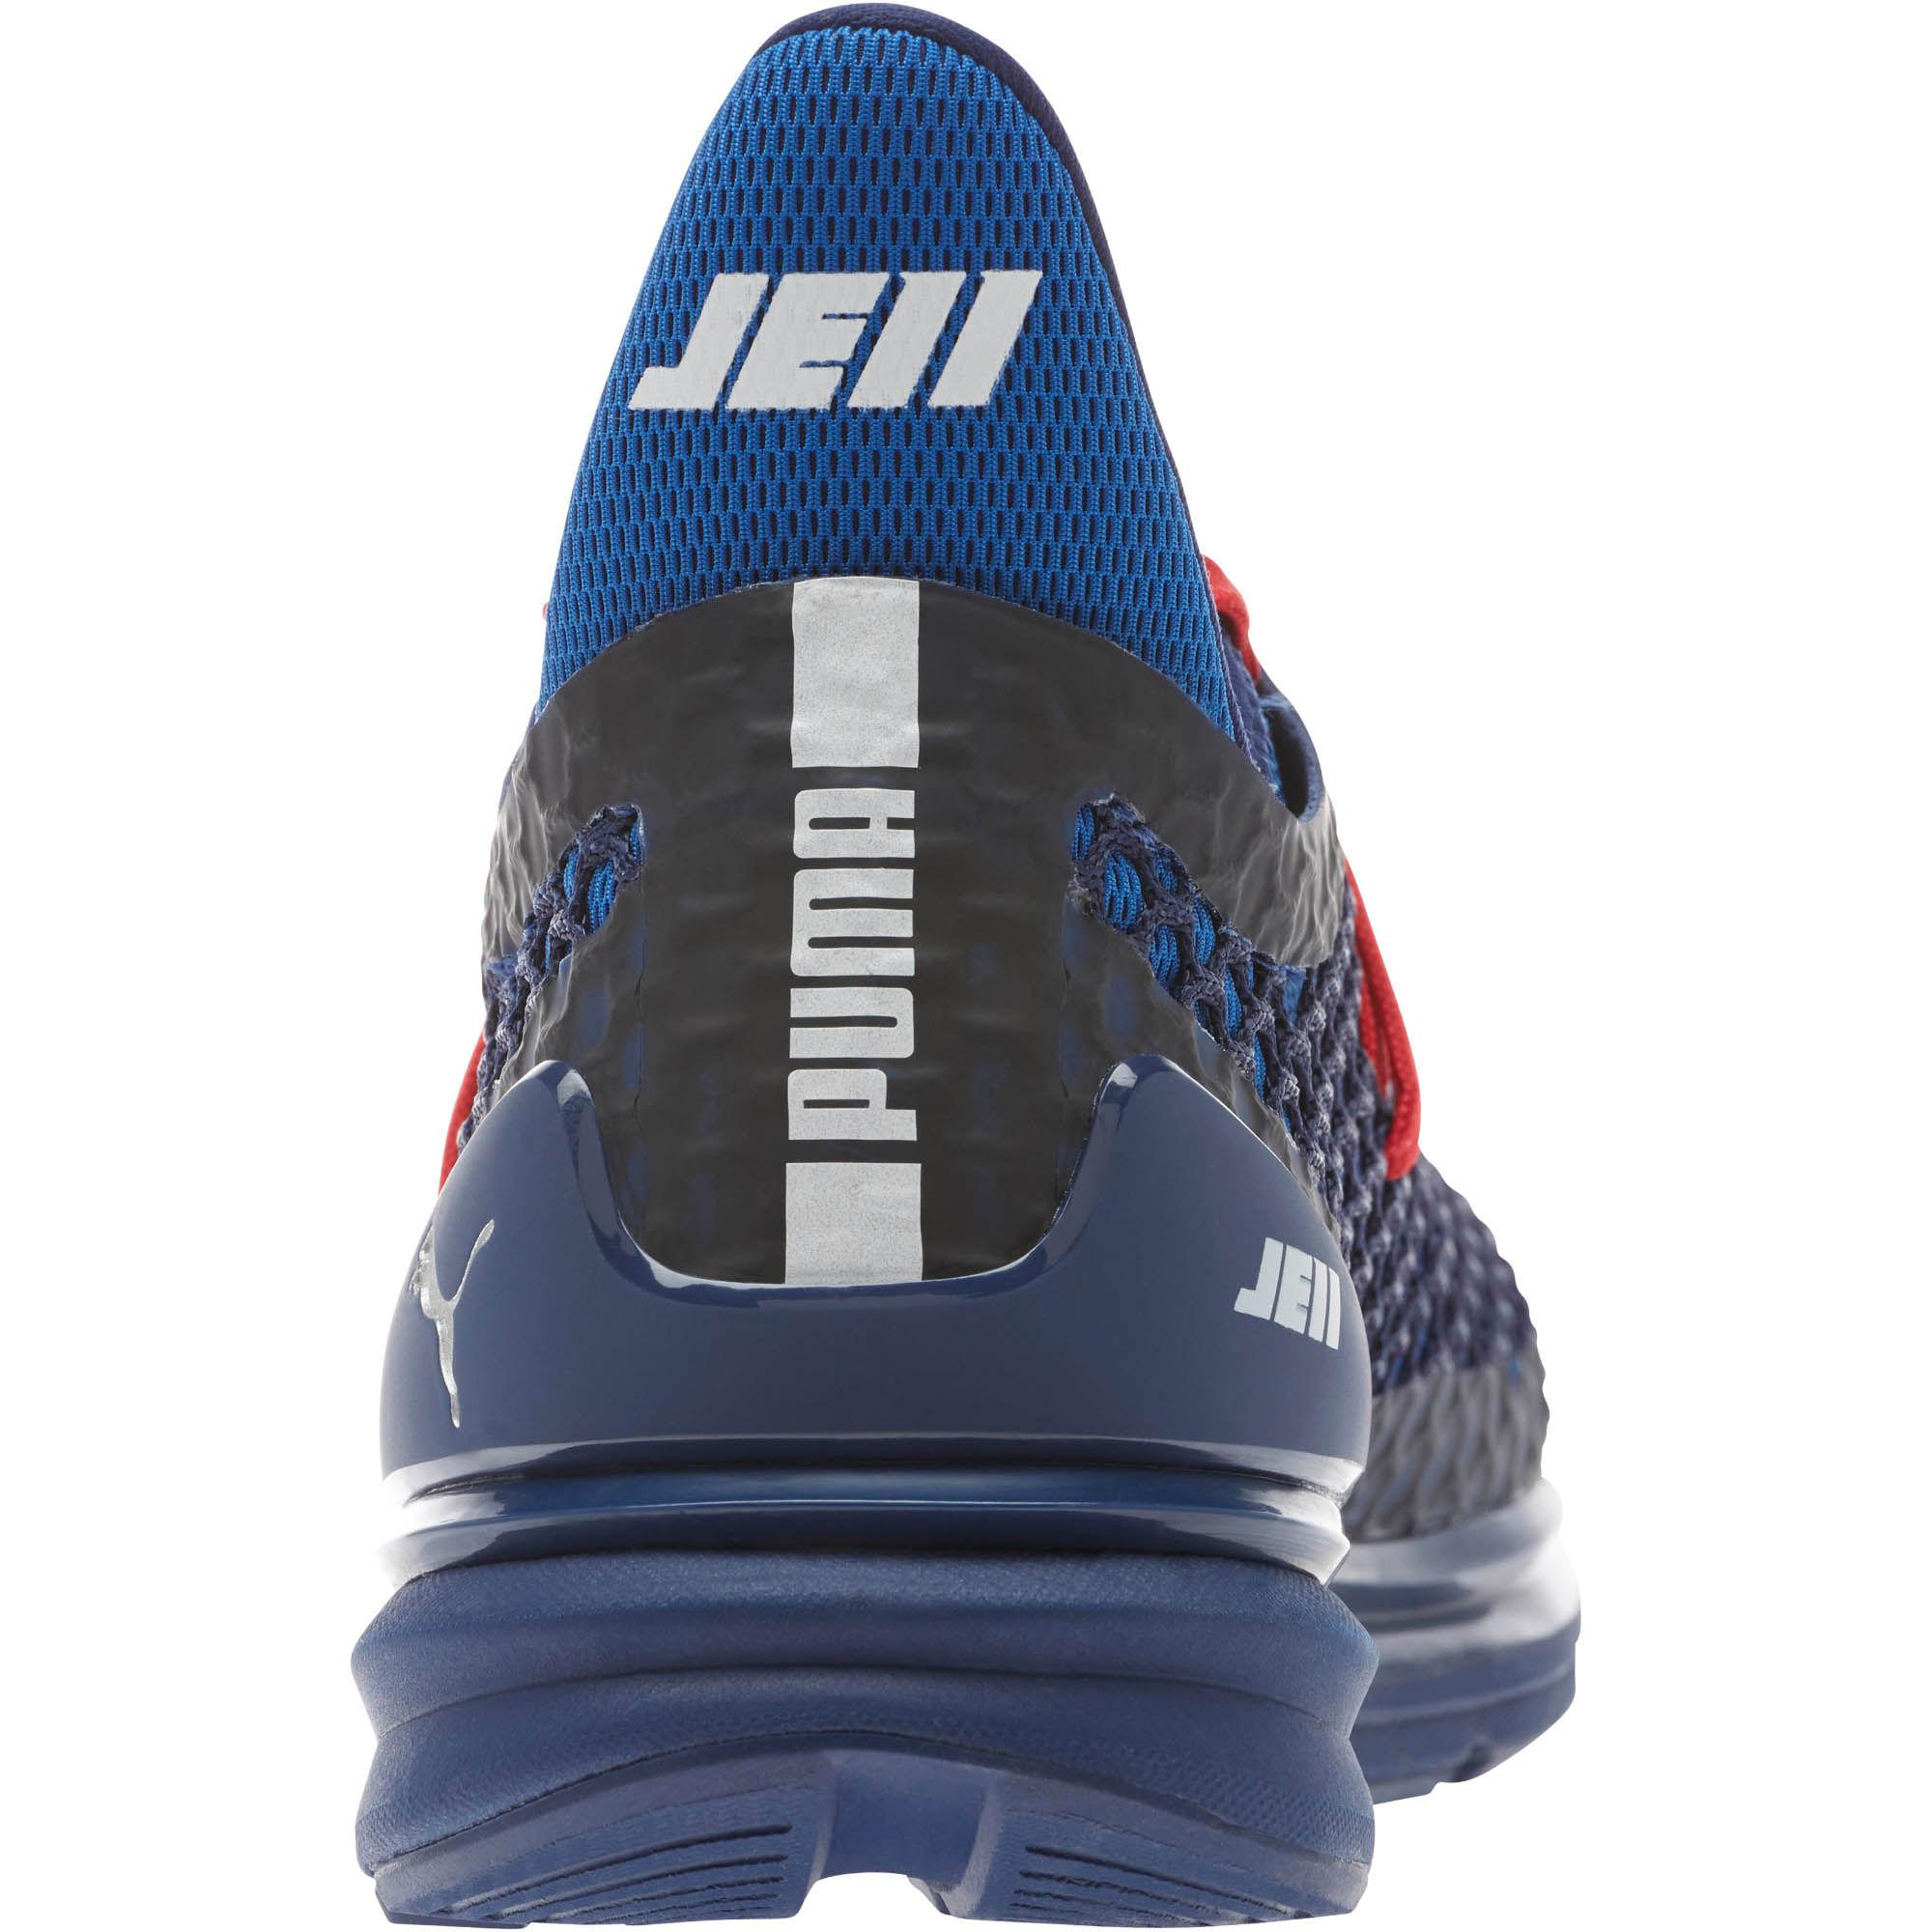 ... low price lyst puma ignite limitless netfit je11 mens training shoes in  f9681 c27a1 8f76dc8ec